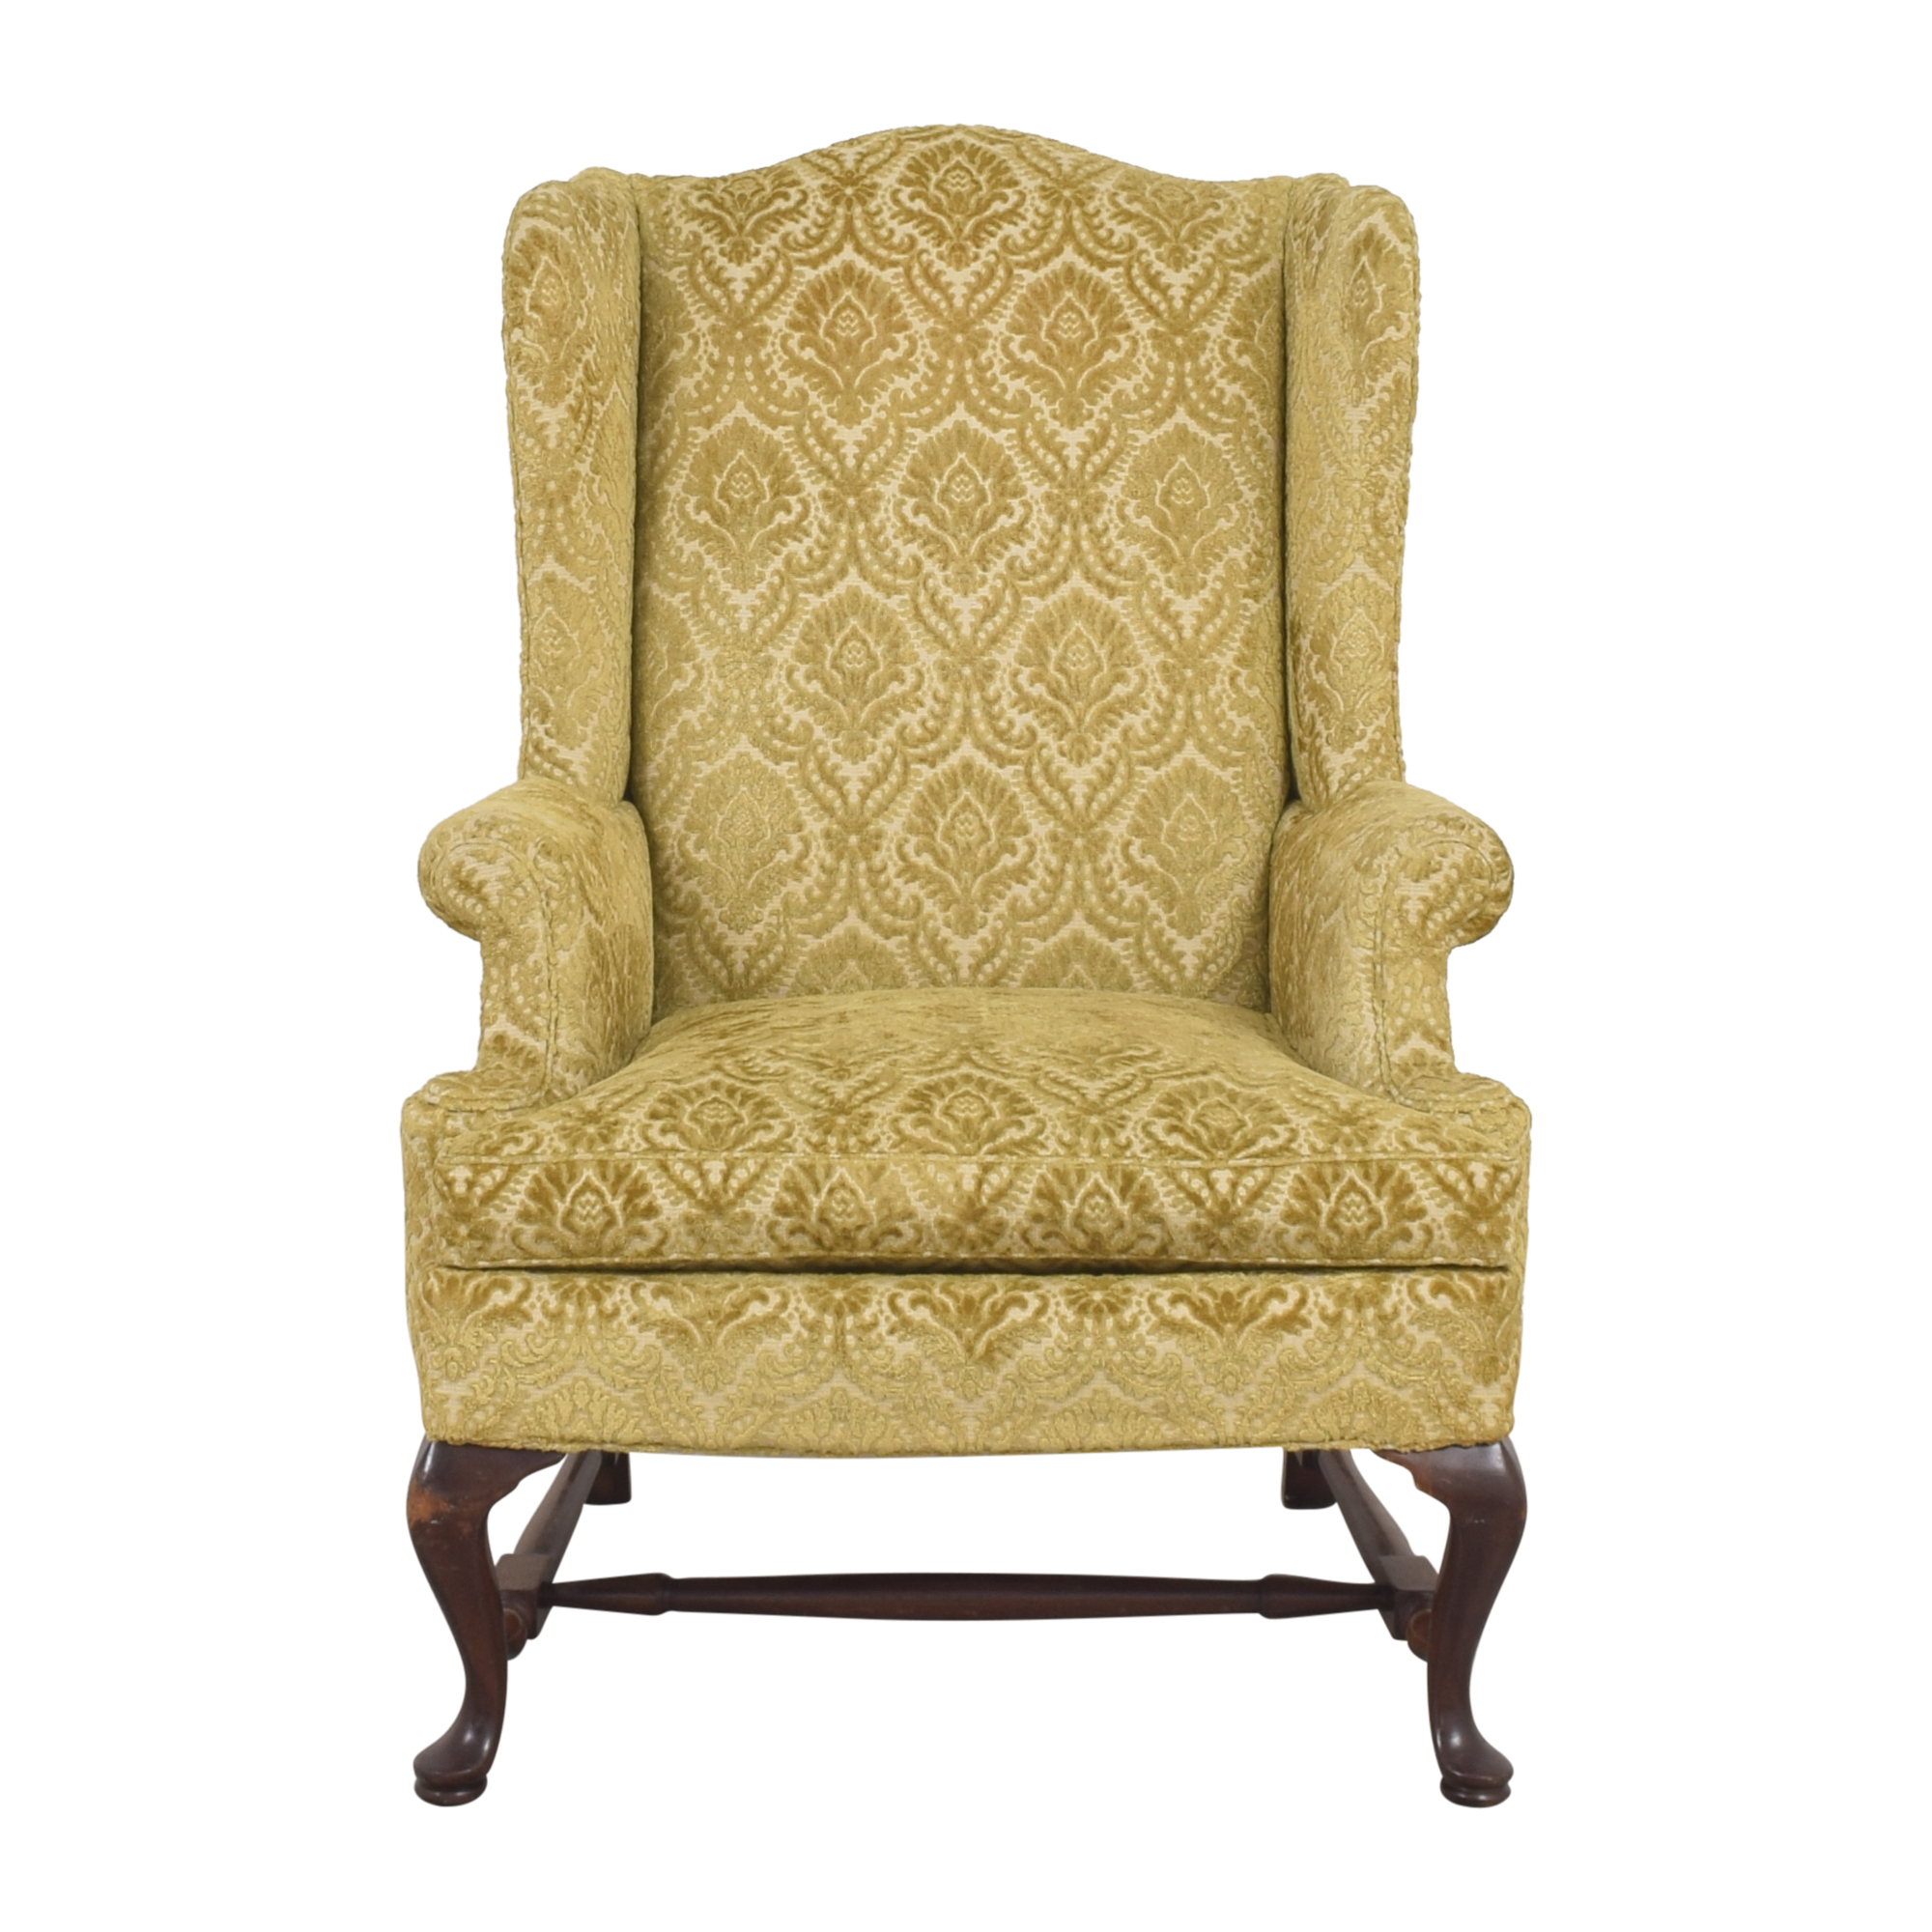 Hickory Chair Hickory Chair Queen Anne Wing Back Chair yellow & brown